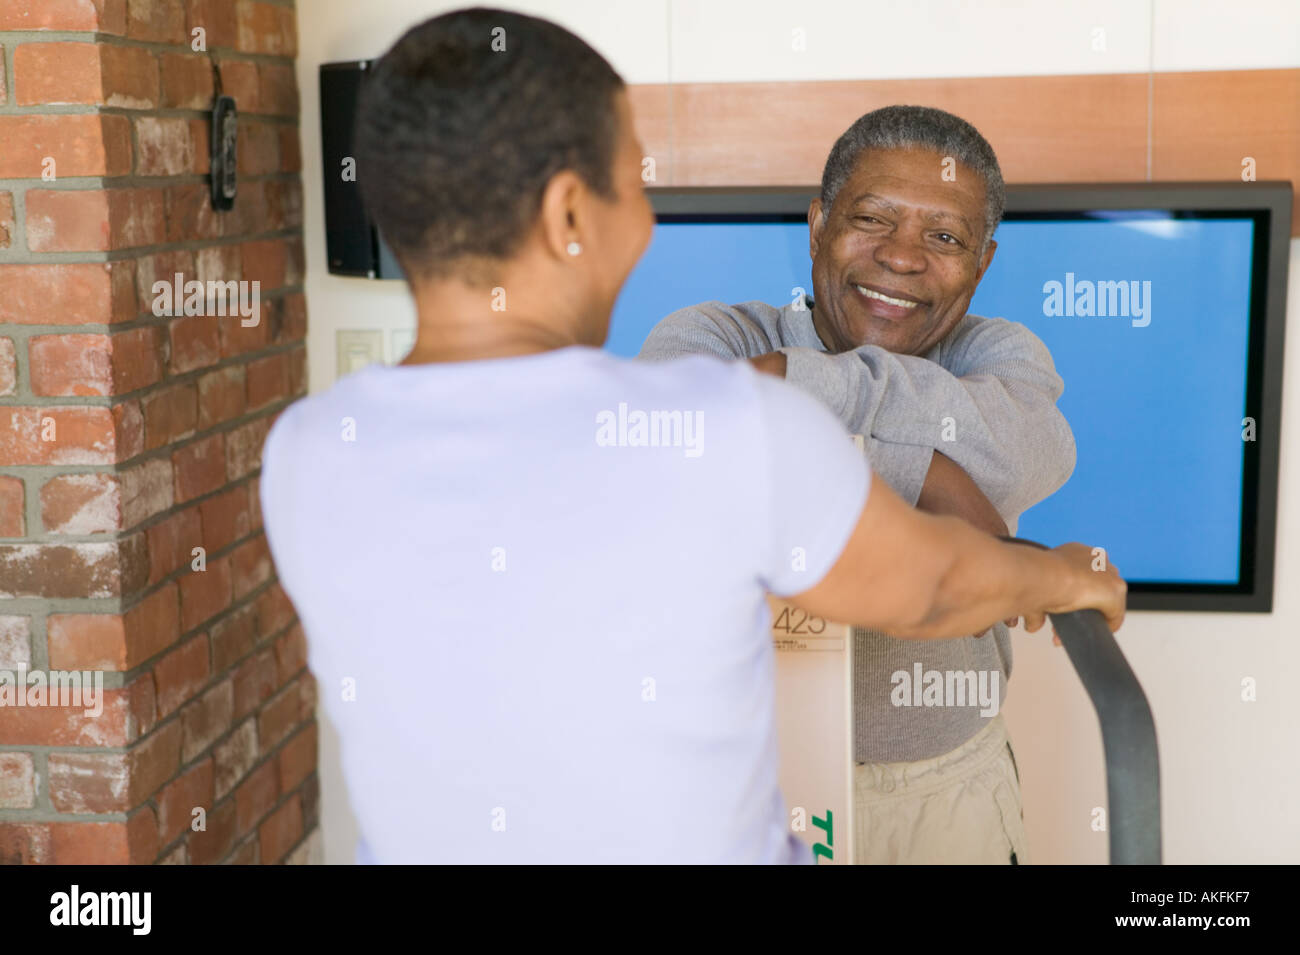 Seniors African Americans Exercising on stepper machine and plasma TV - Stock Image